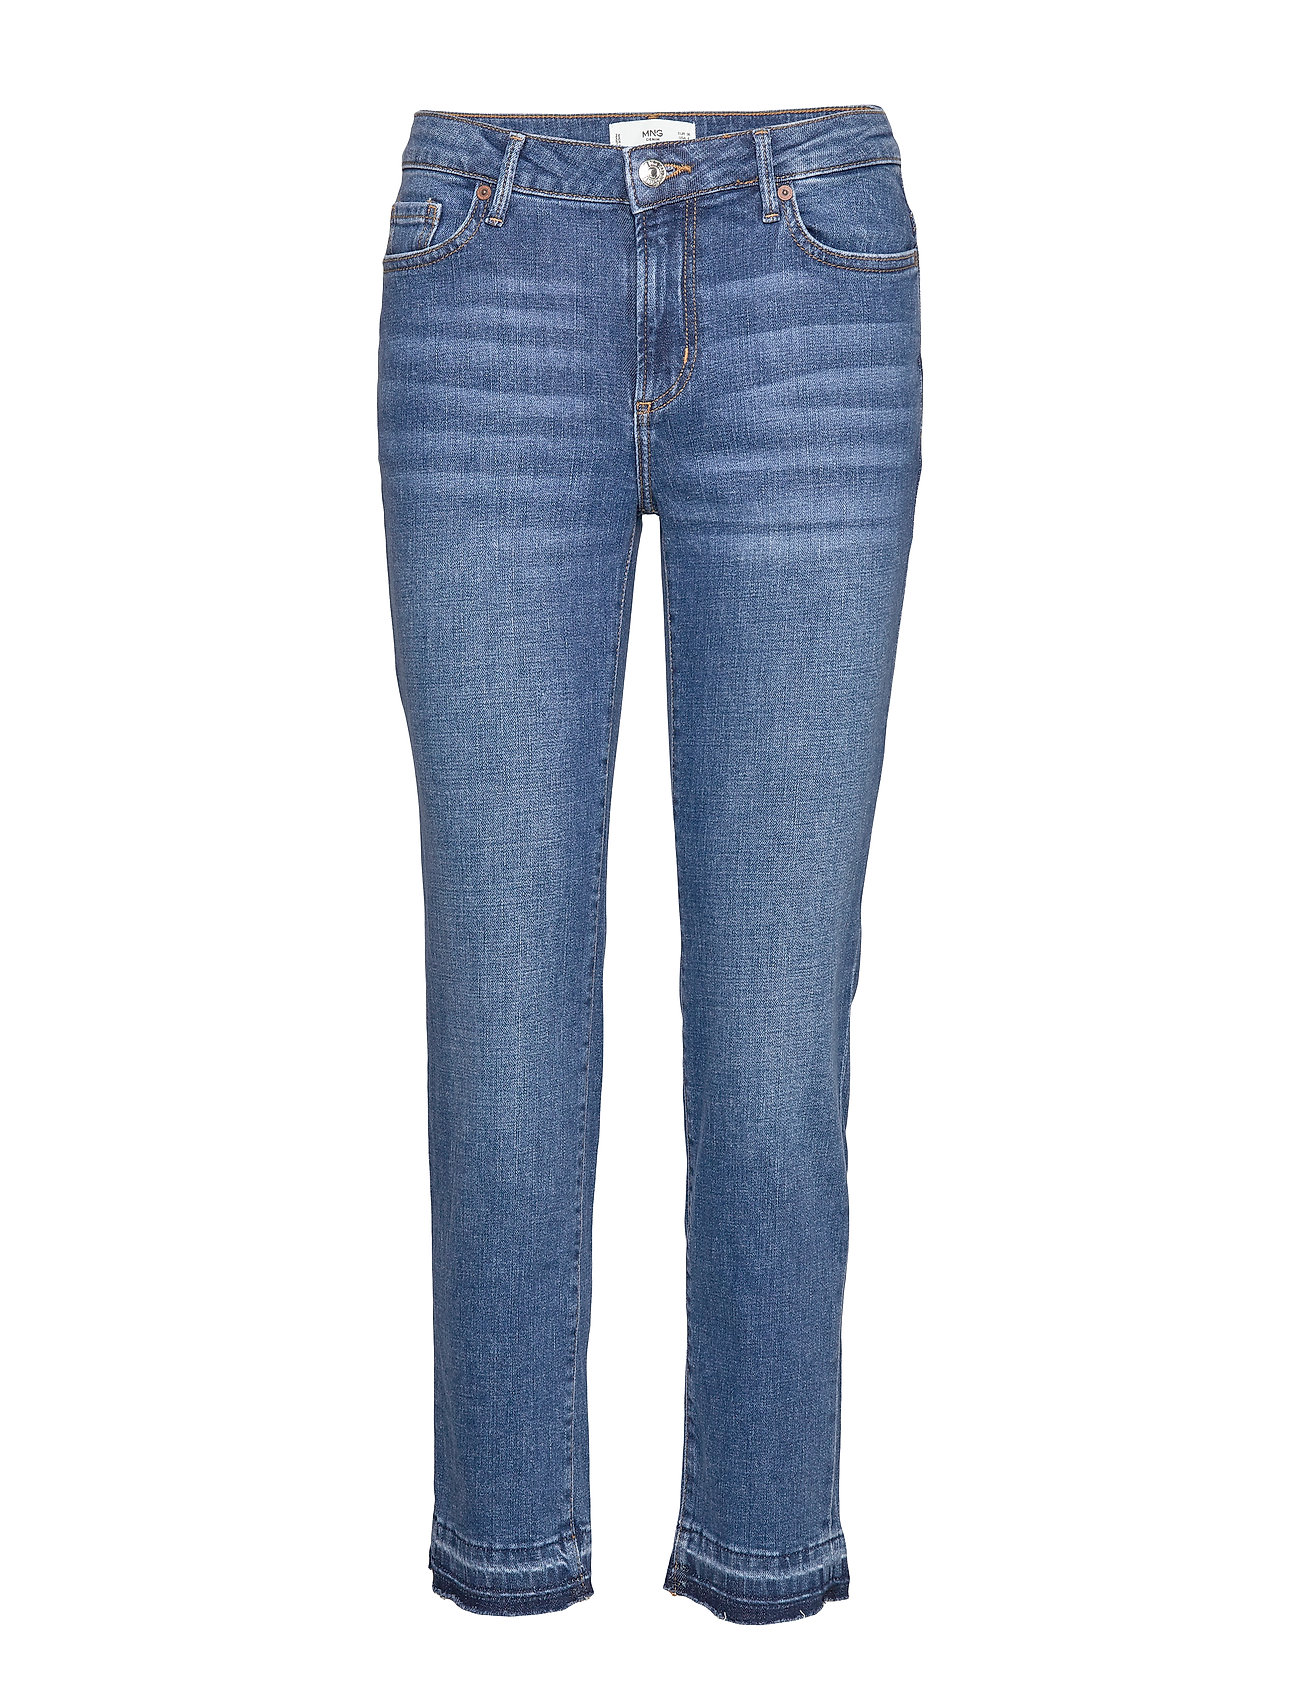 Mango Jeans Slim Cropped - OPEN BLUE